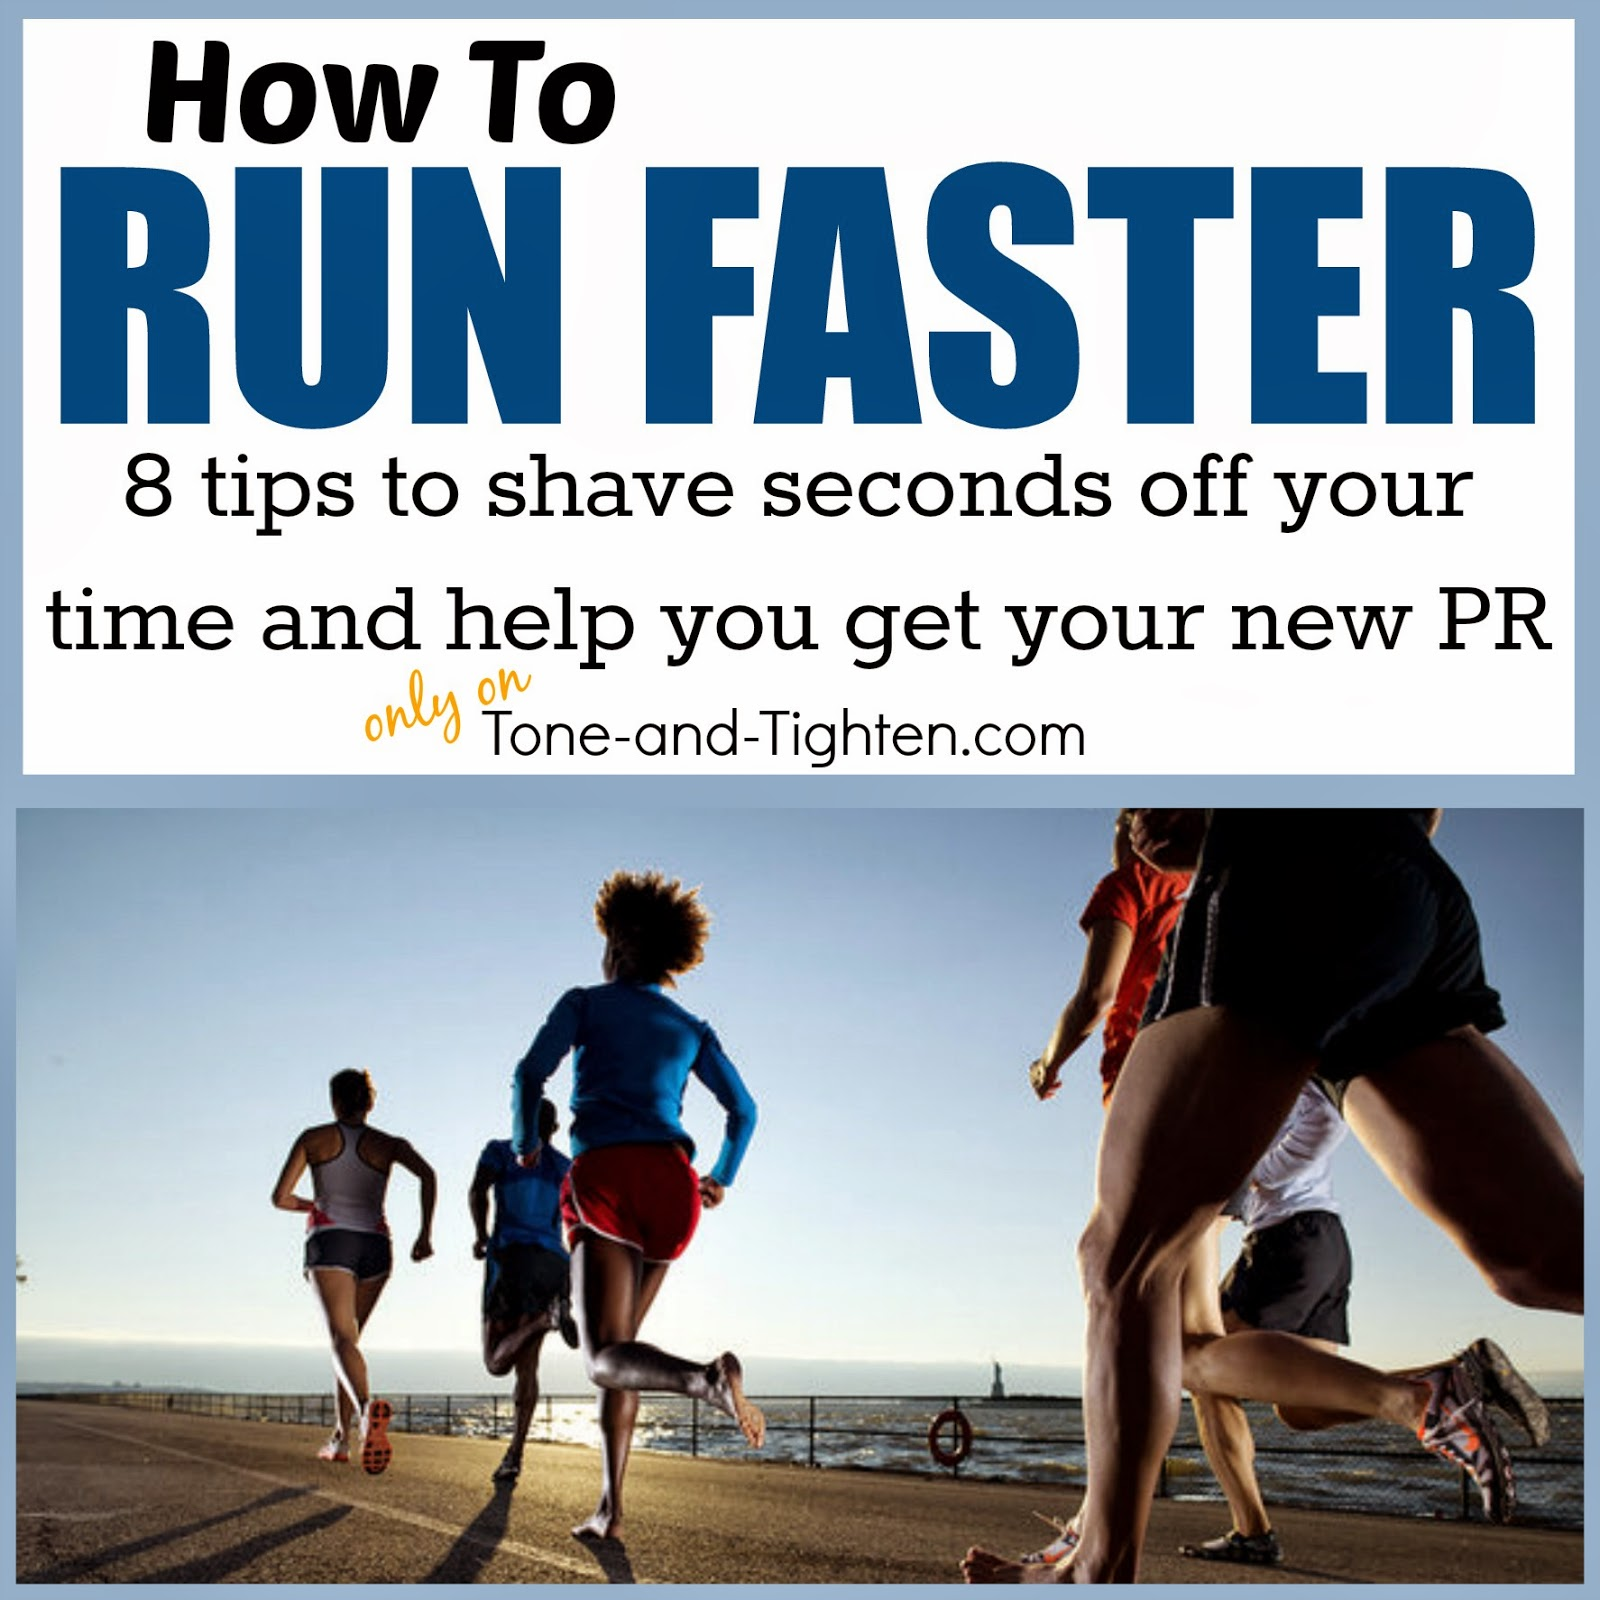 http://tone-and-tighten.com/2014/03/how-to-run-faster-8-tips-to-help-you-get-your-pr-this-year.html